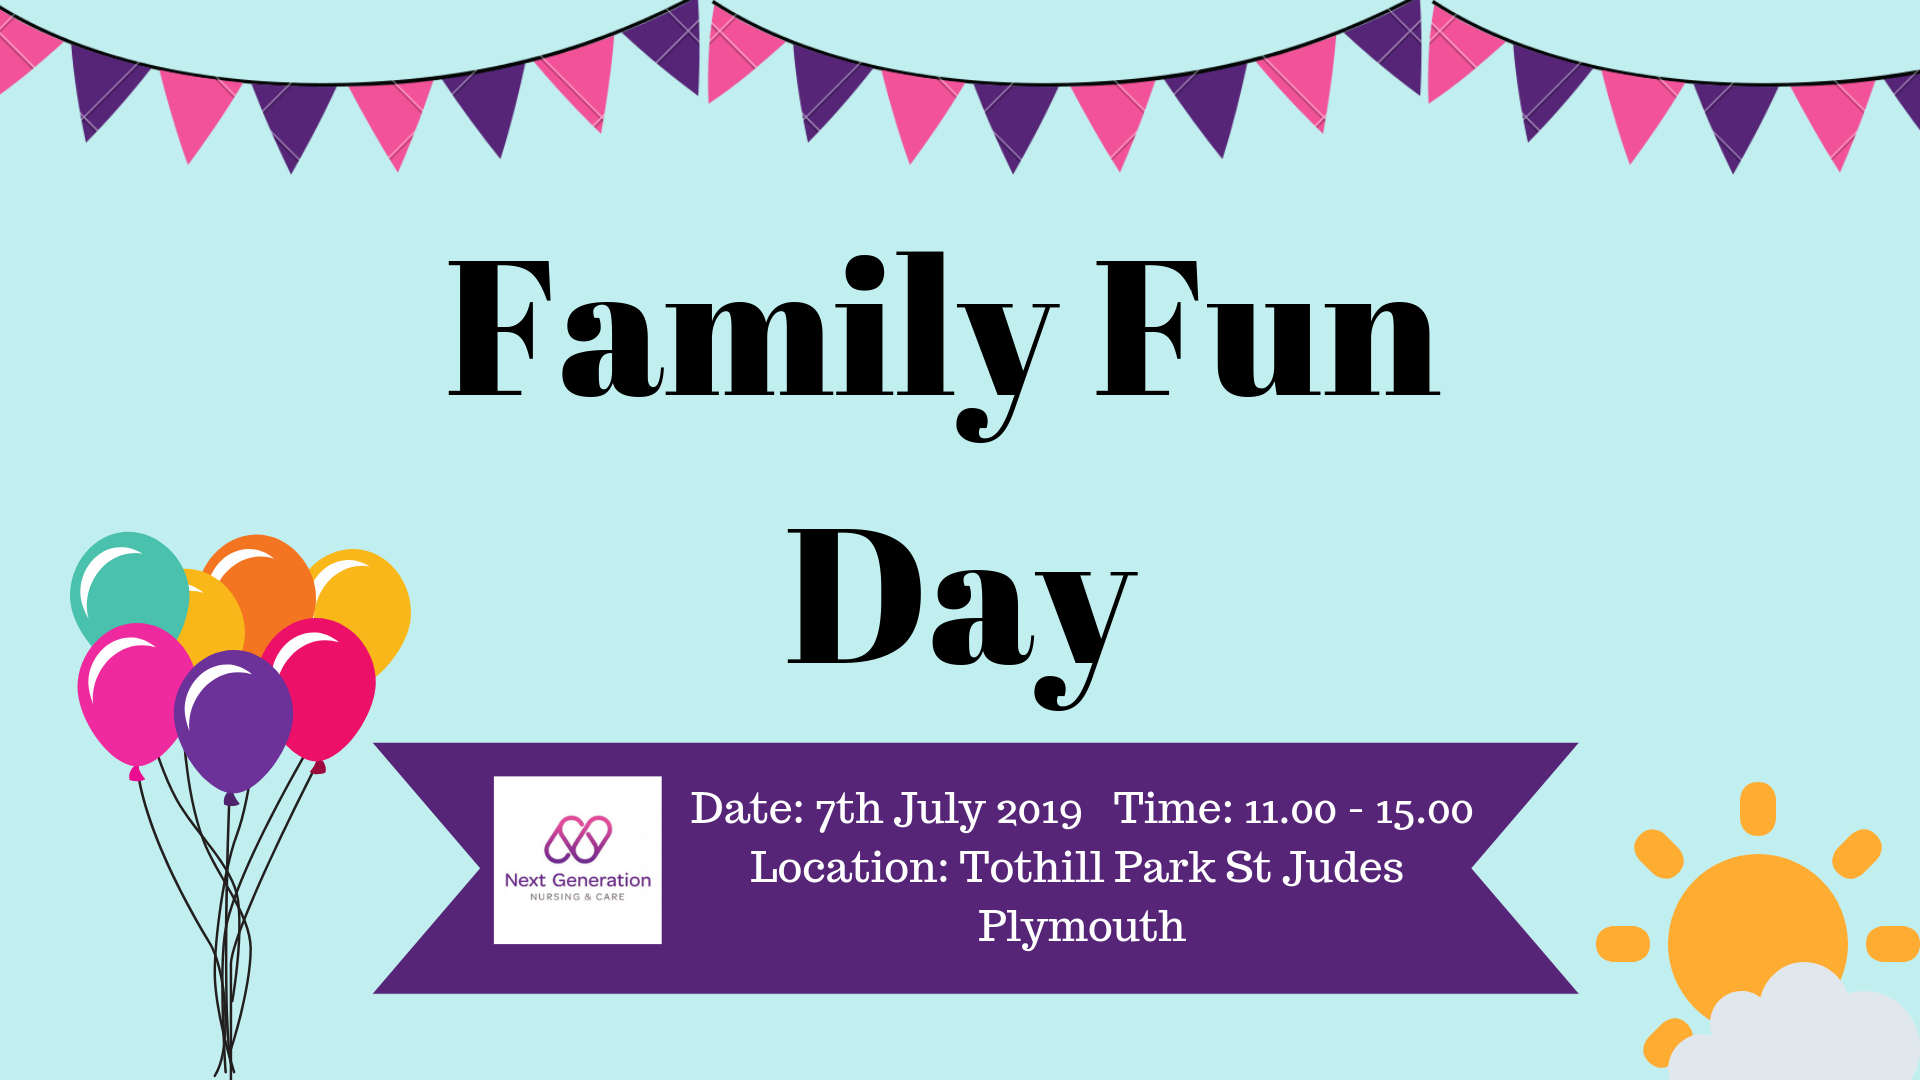 Next Generation Family Fun Day 2019